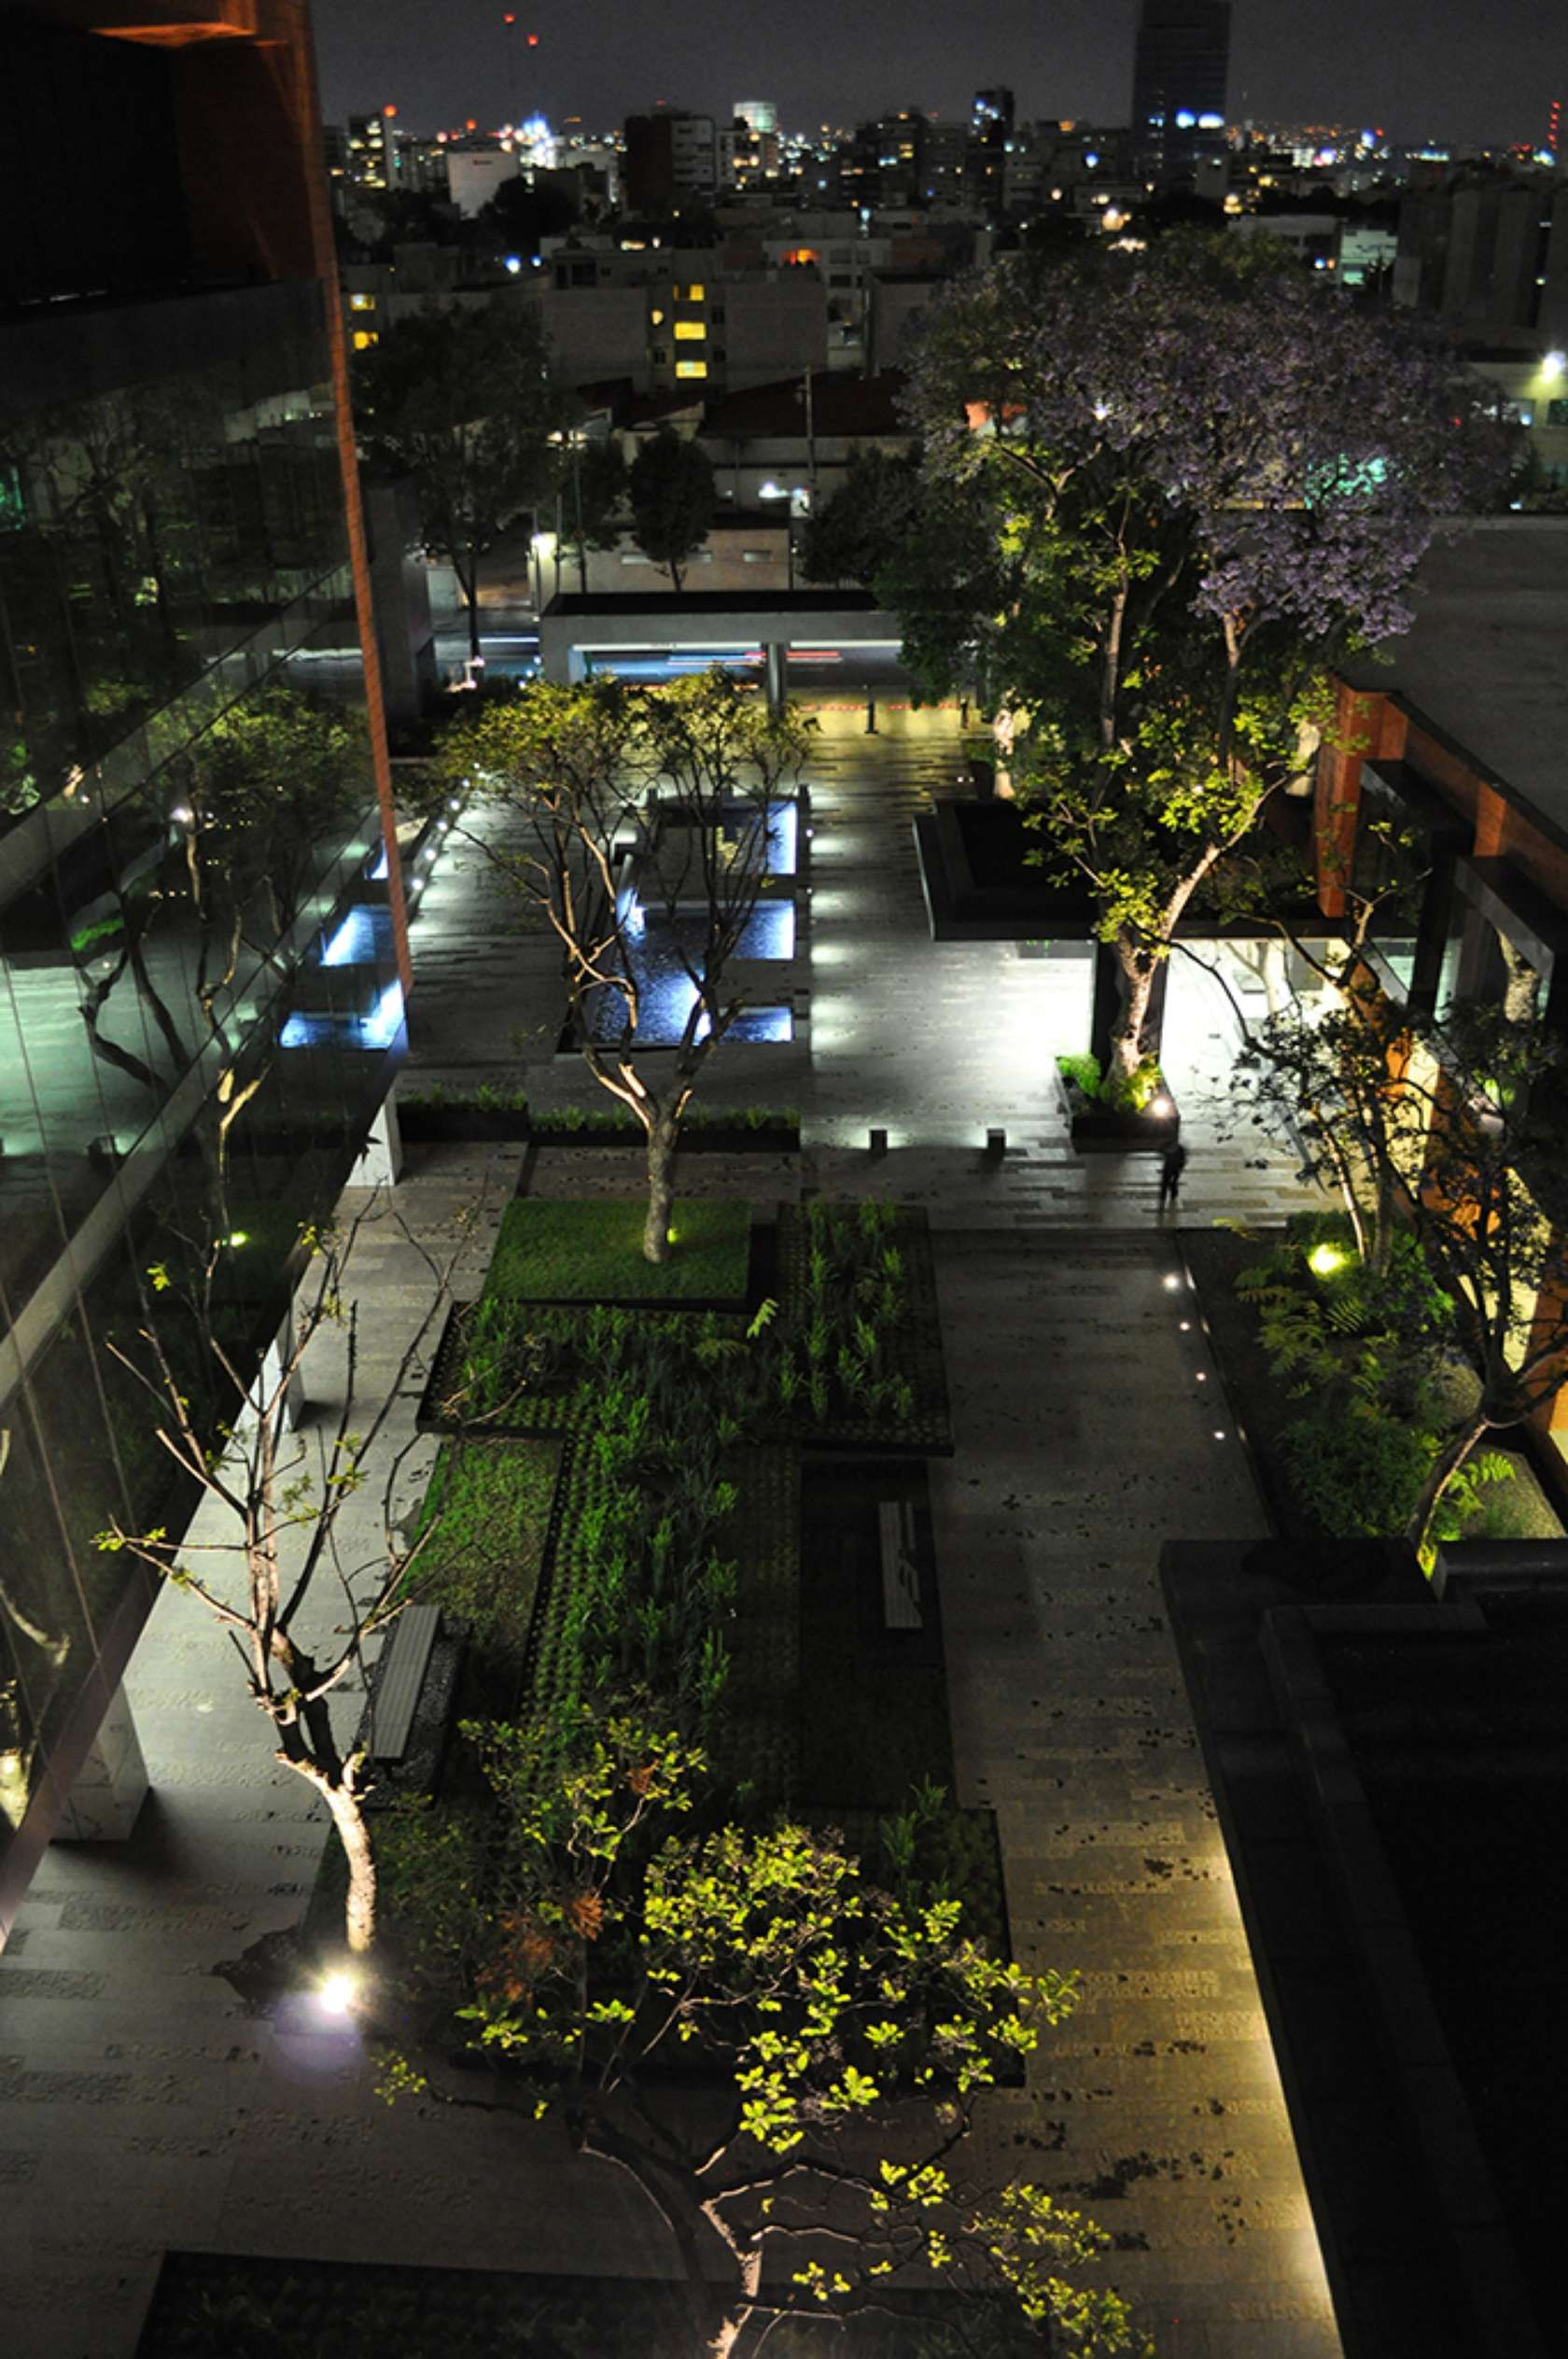 Garden landscape night  Coyoacán corporate campus  landscape architecture  Pinterest